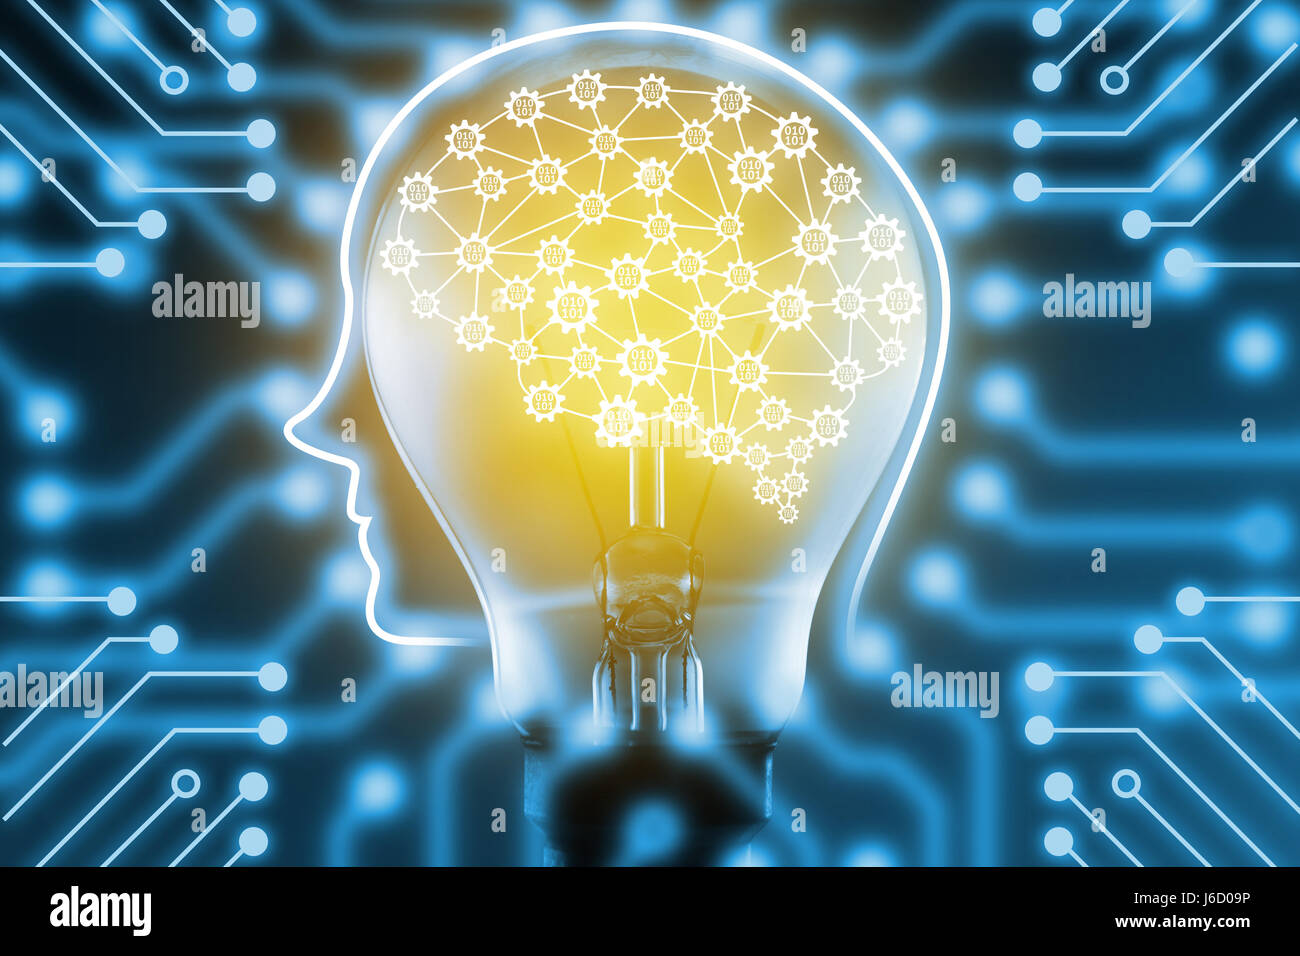 Machine learning and artificial intelligence concept. Fintech Financial Technology concept. Robot brain with gears - Stock Image